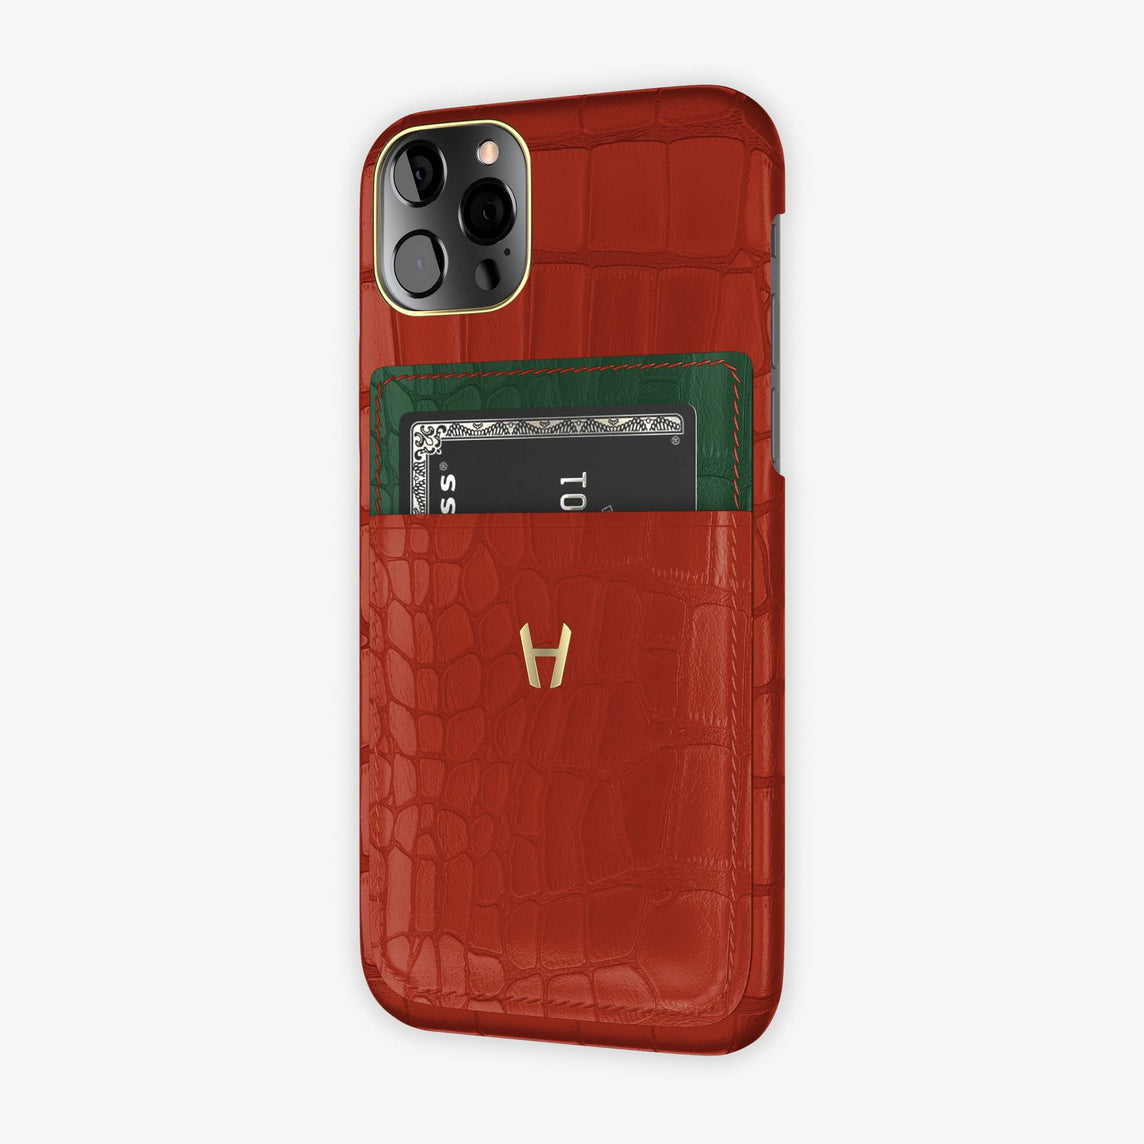 Alligator Pocket Case iPhone 12 & 12 Pro | Red/Green - Yellow Gold